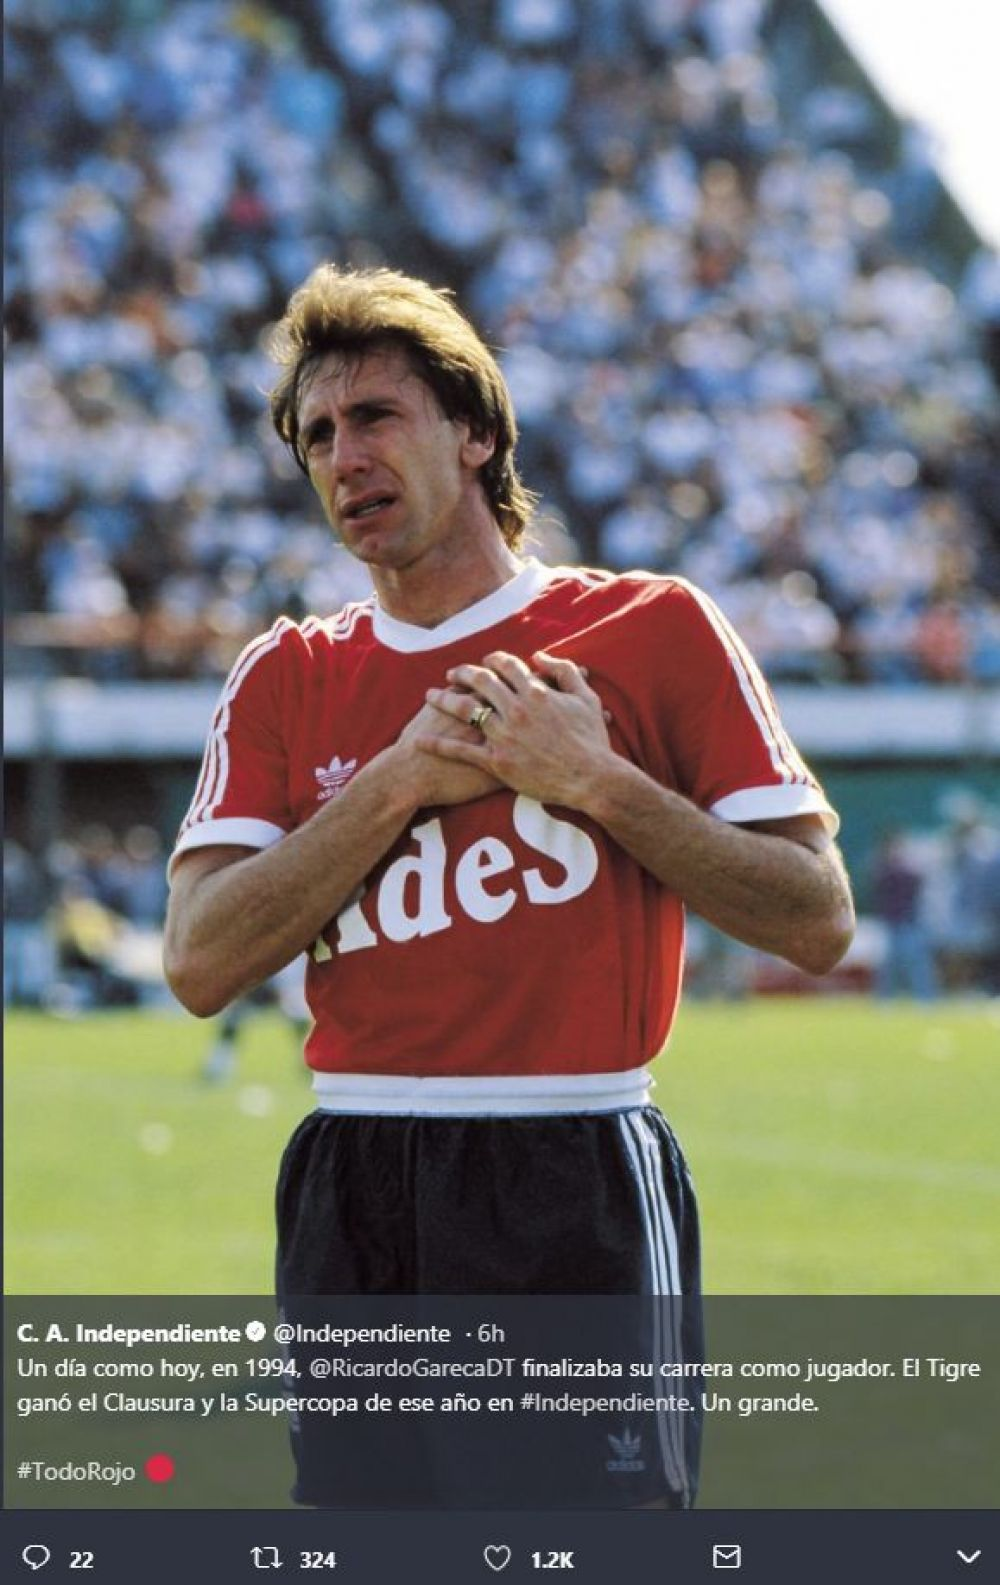 Independiente Ricardo Gareca